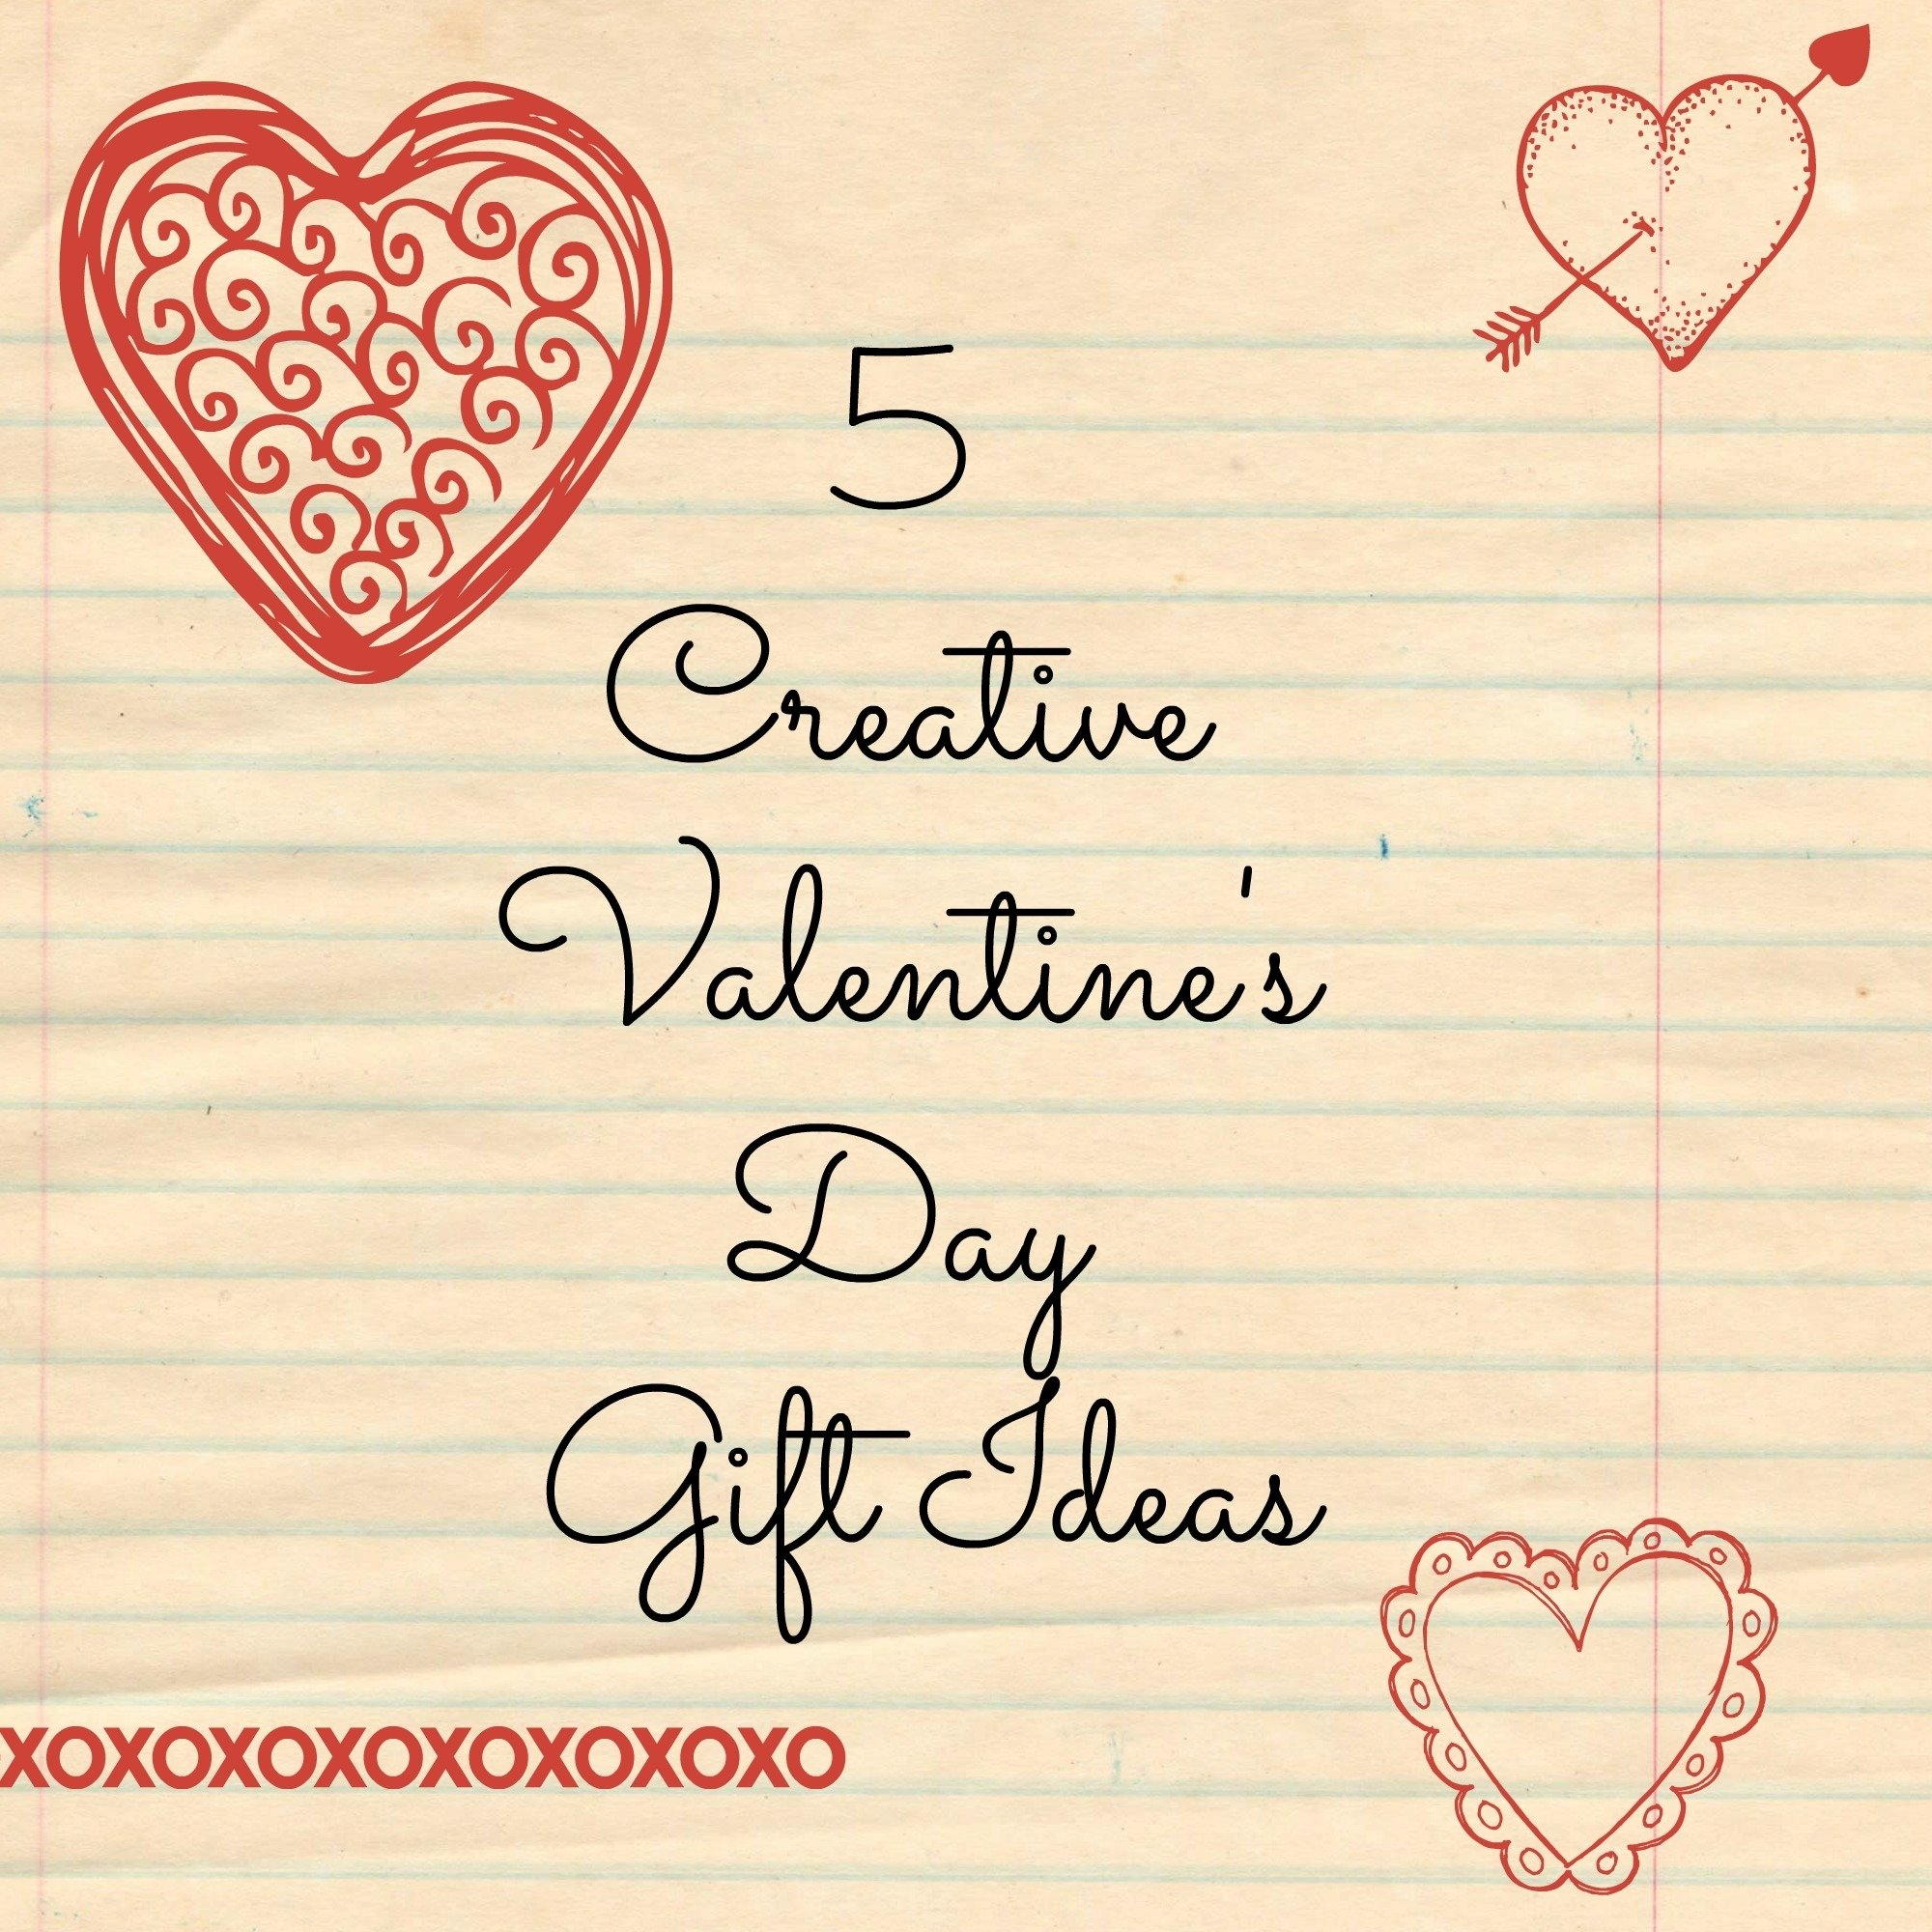 5 creative valentine's day gift ideas - thrill of the chases